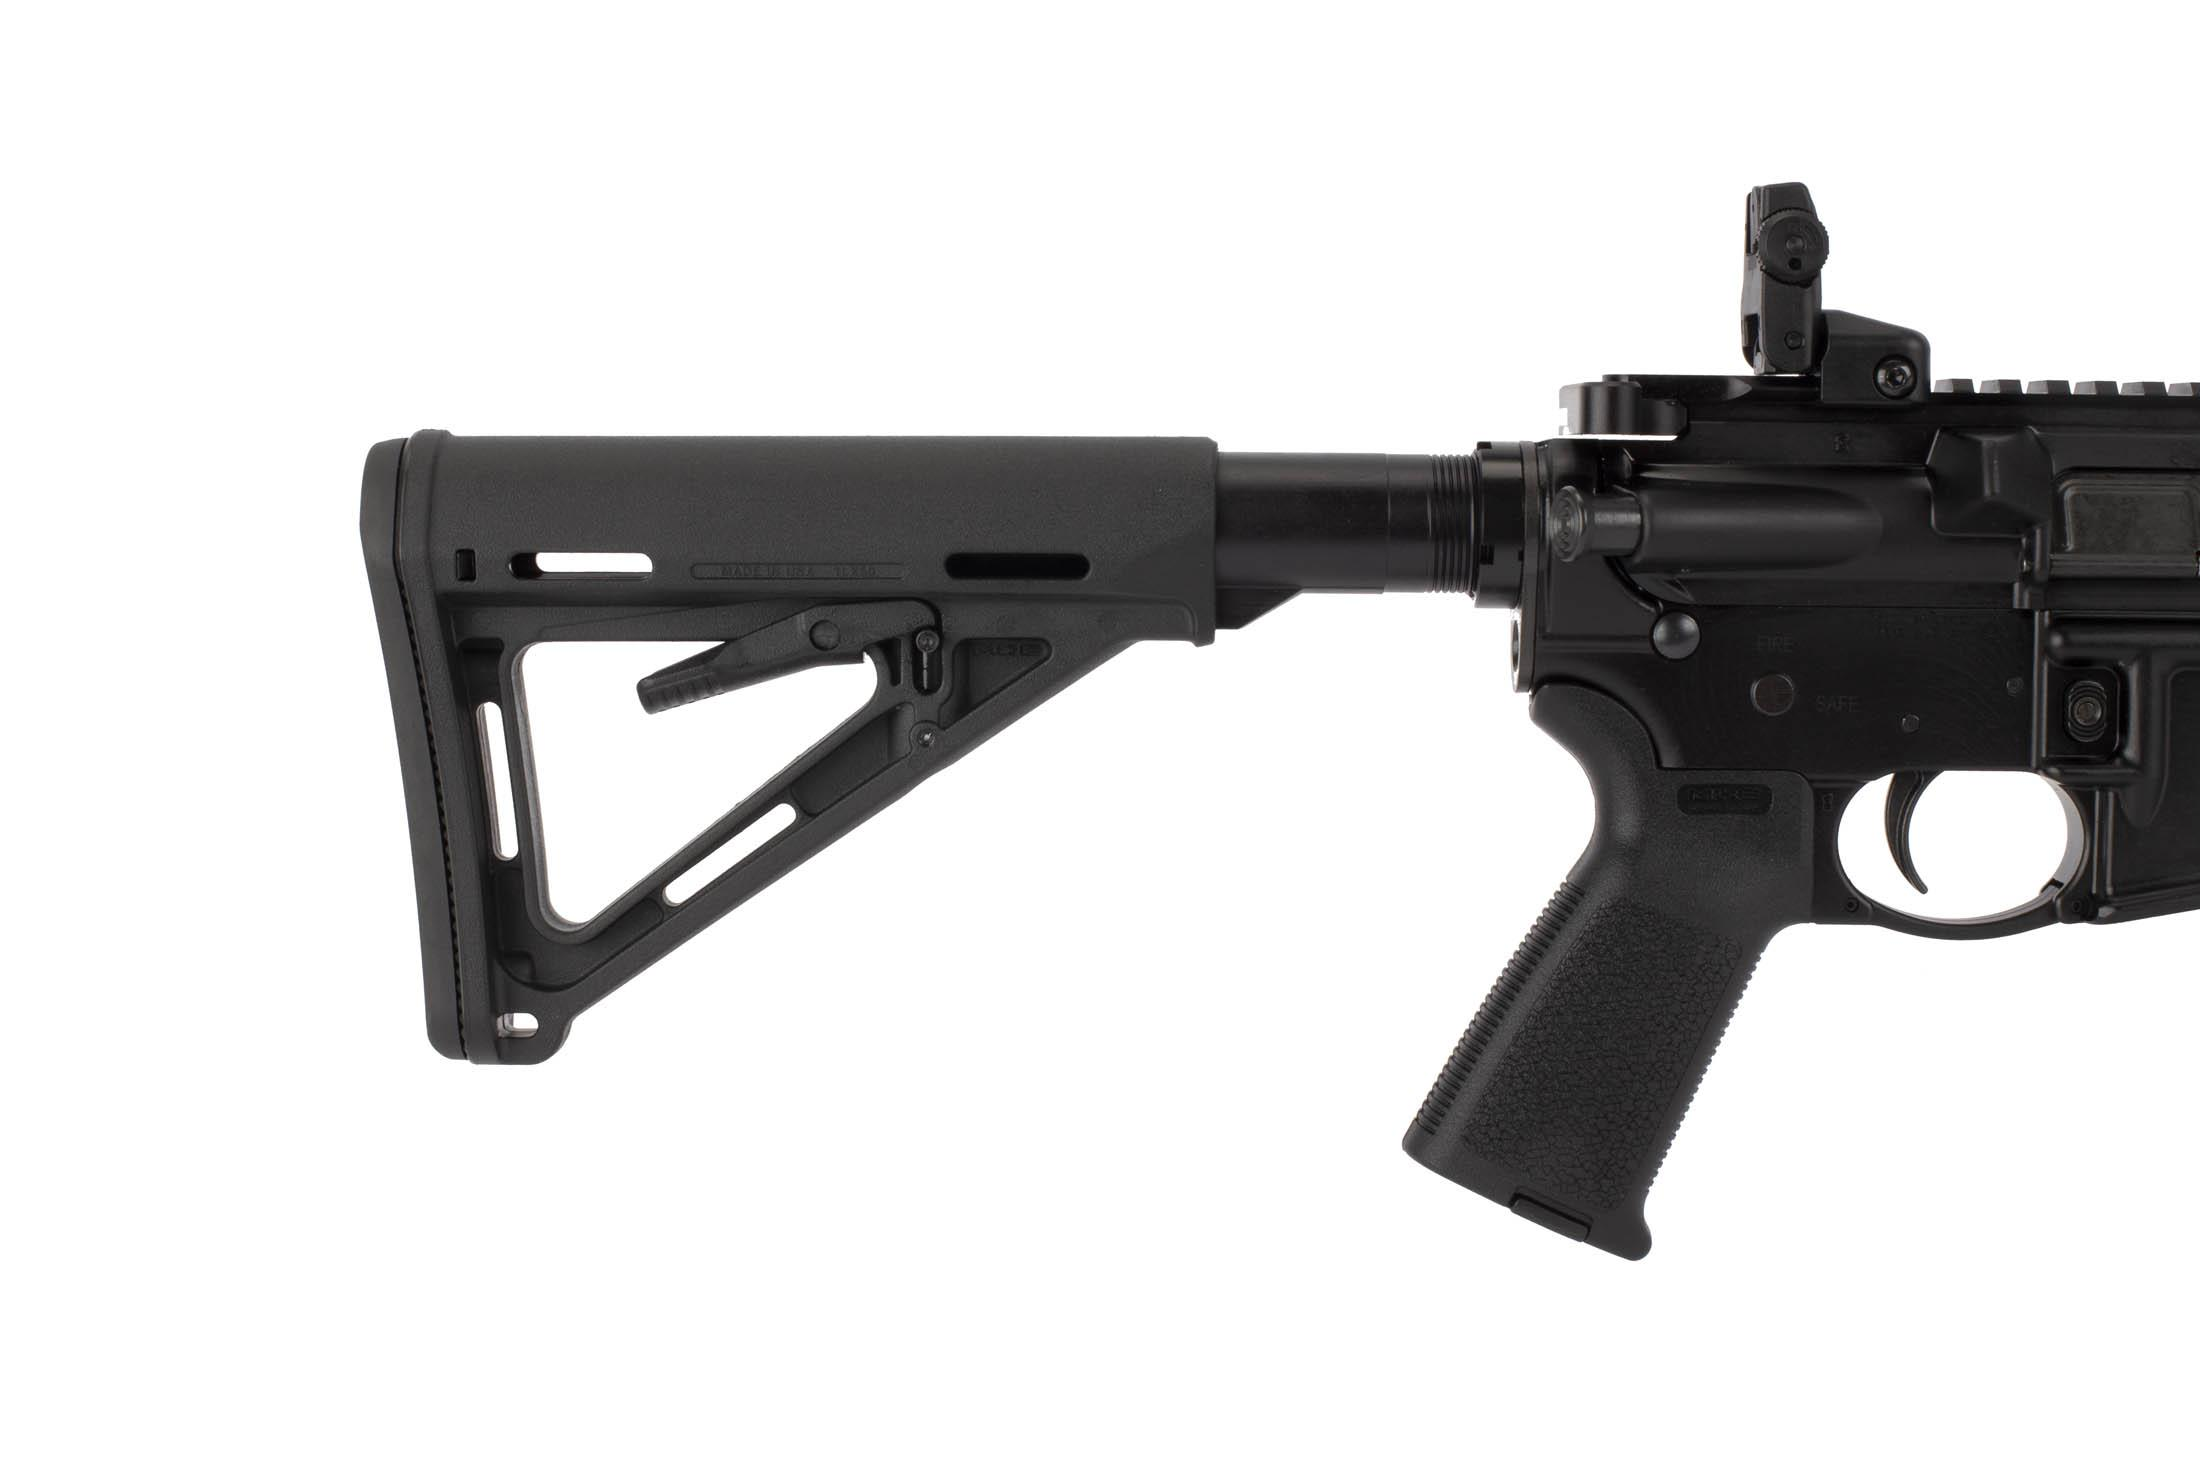 Ruger's AR-556 is factory equipped with Magpul MOE pistol grip and MIL-SPEC MOE collapsible stock